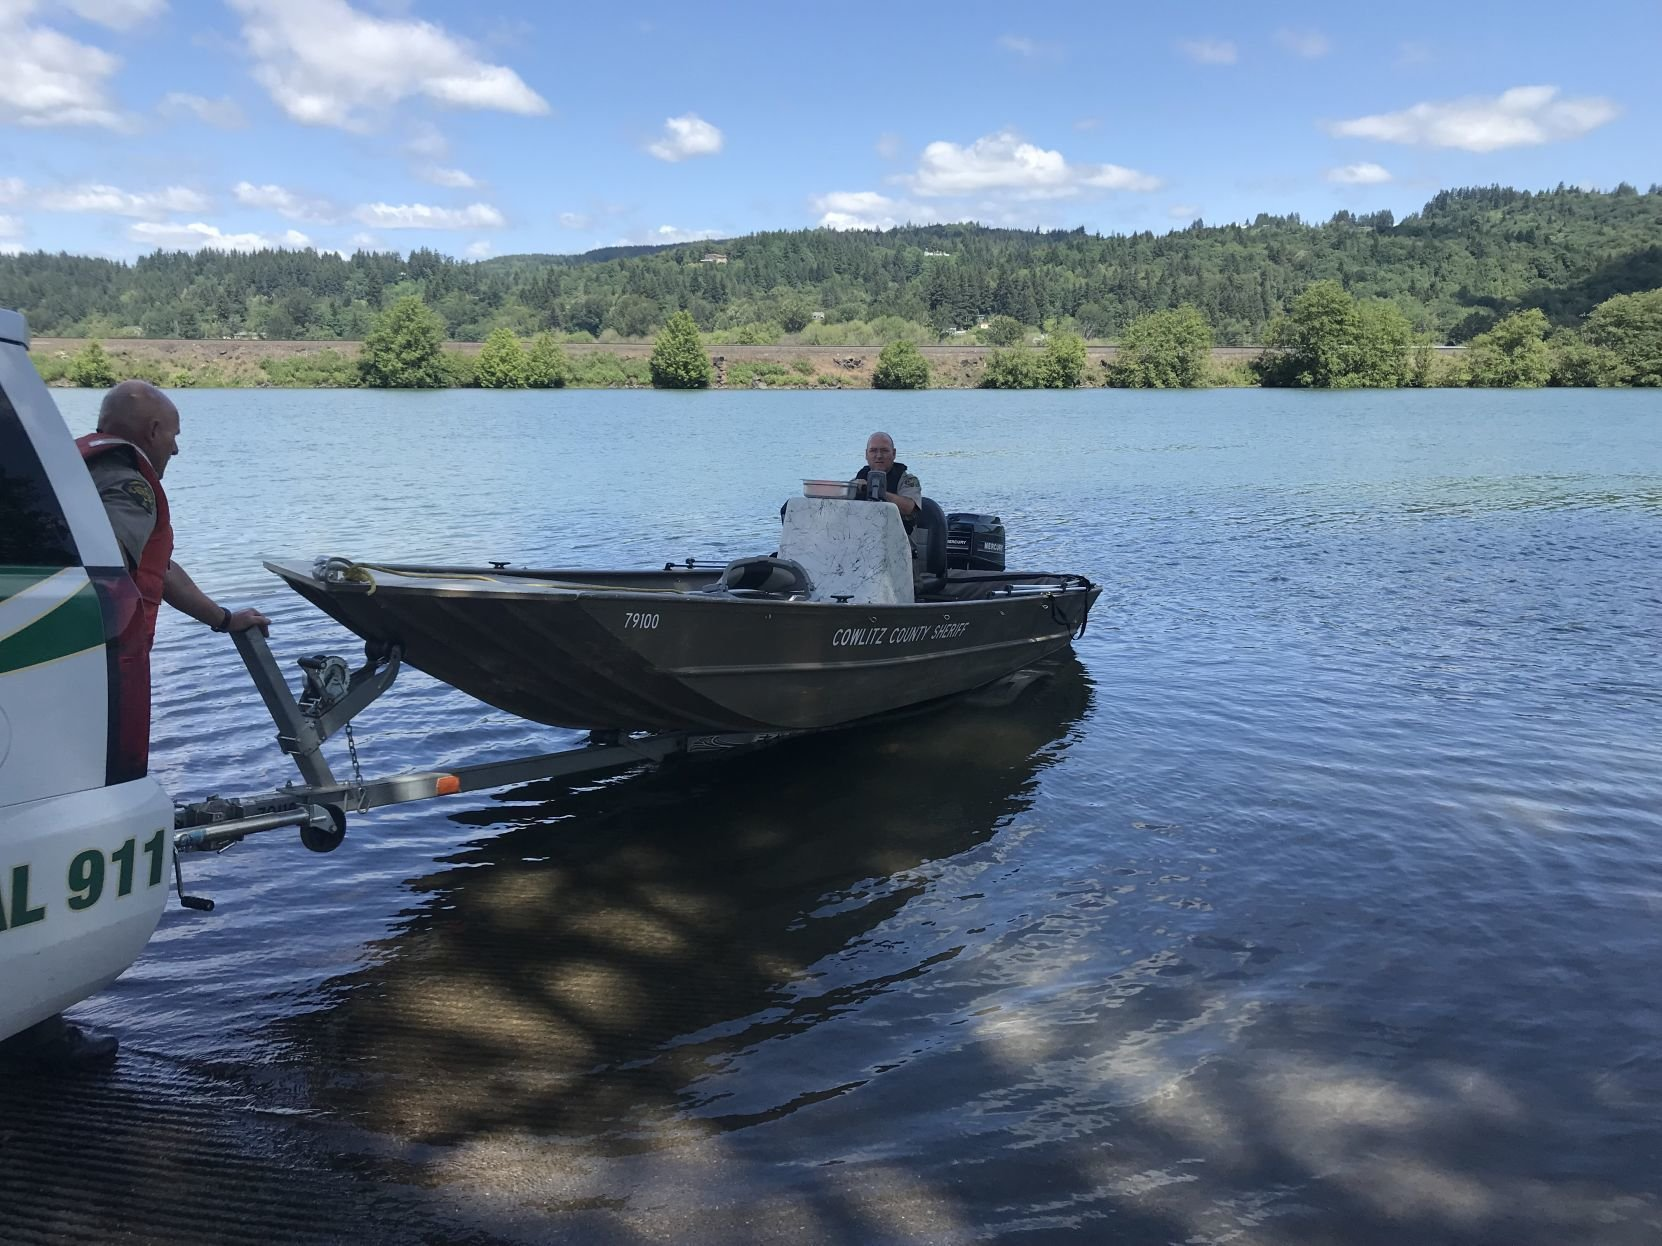 The sheriff's office towed the man's sunken boat to shore. (Photo: Cowlitz County Sheriff's Office).